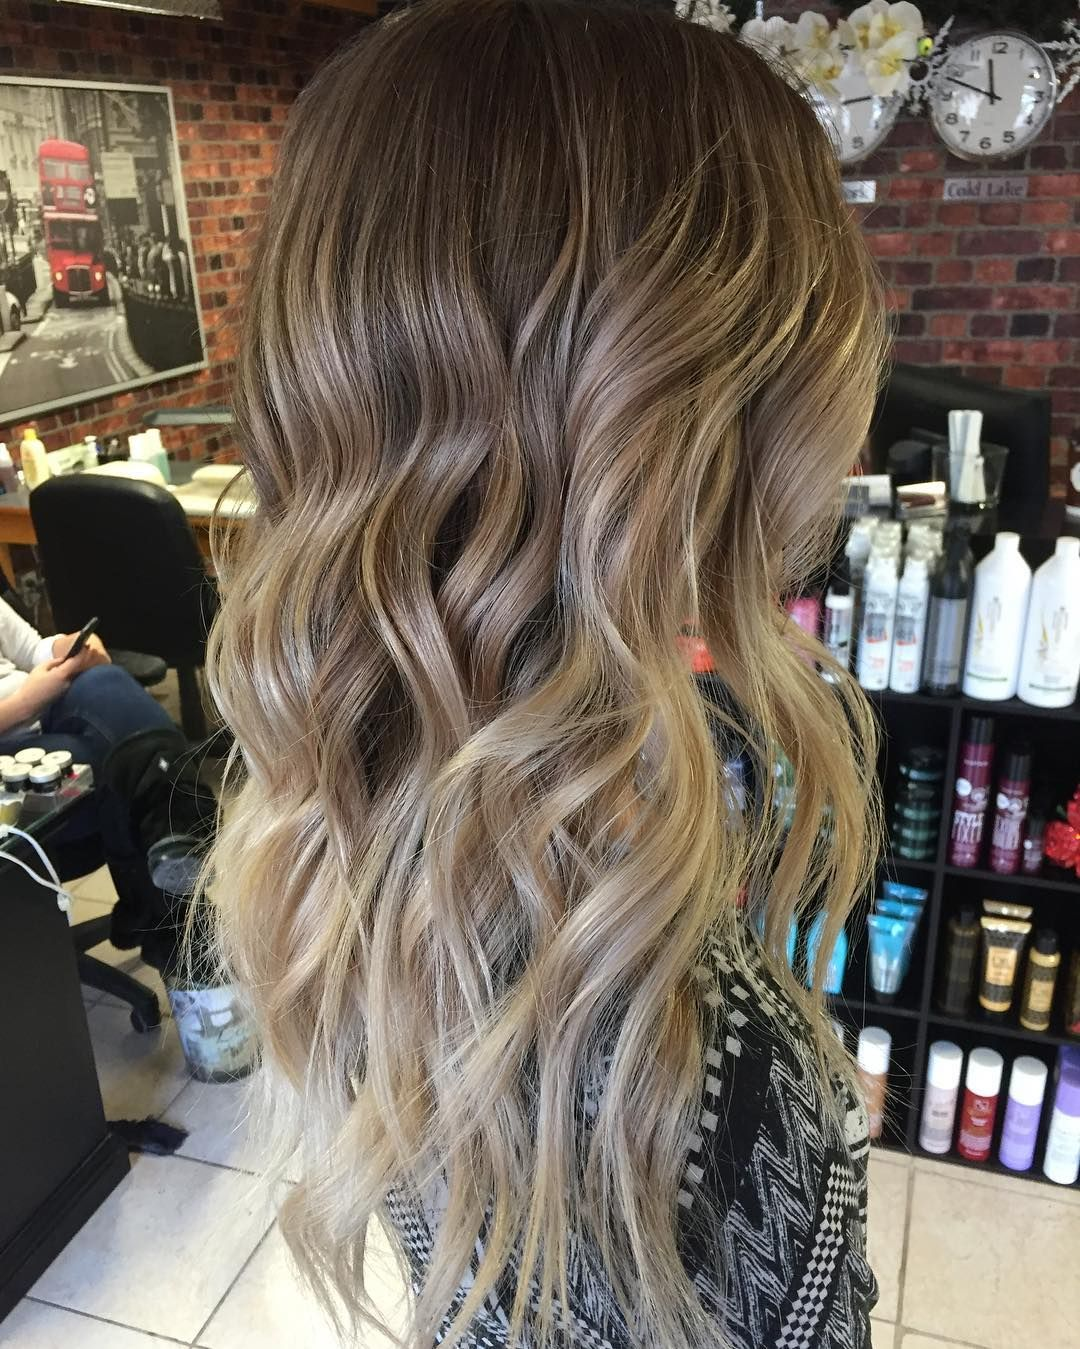 Wavy Dark Blonde Hair With Light Blonde Balayage Blonde Balayage Balayage Hair Dark Blonde Hair